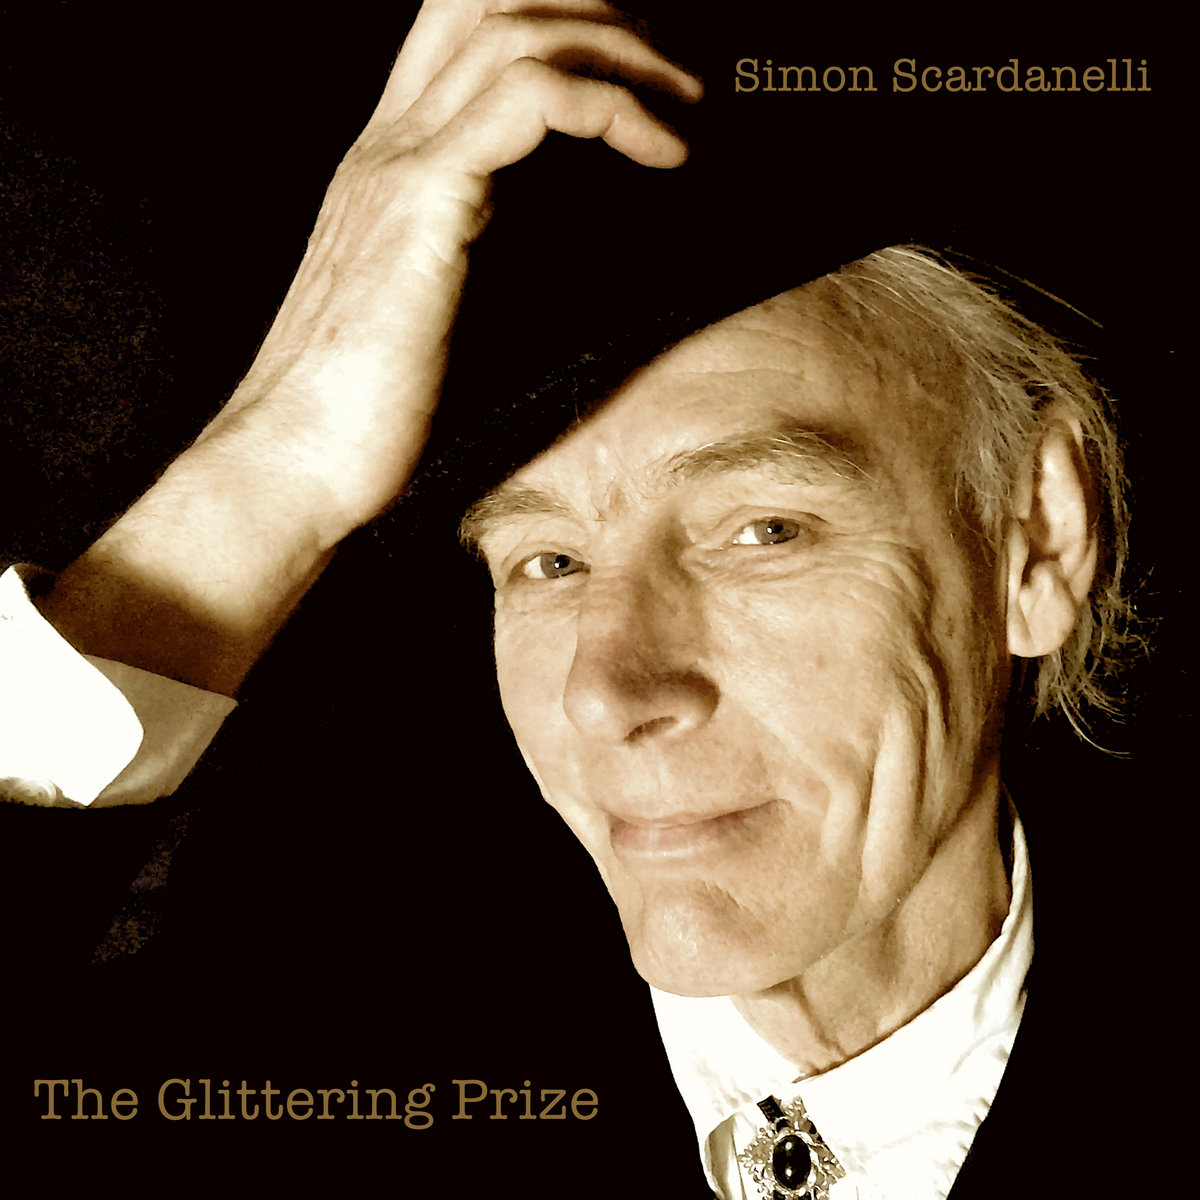 The Glittering Prize by Simon Scardanelli